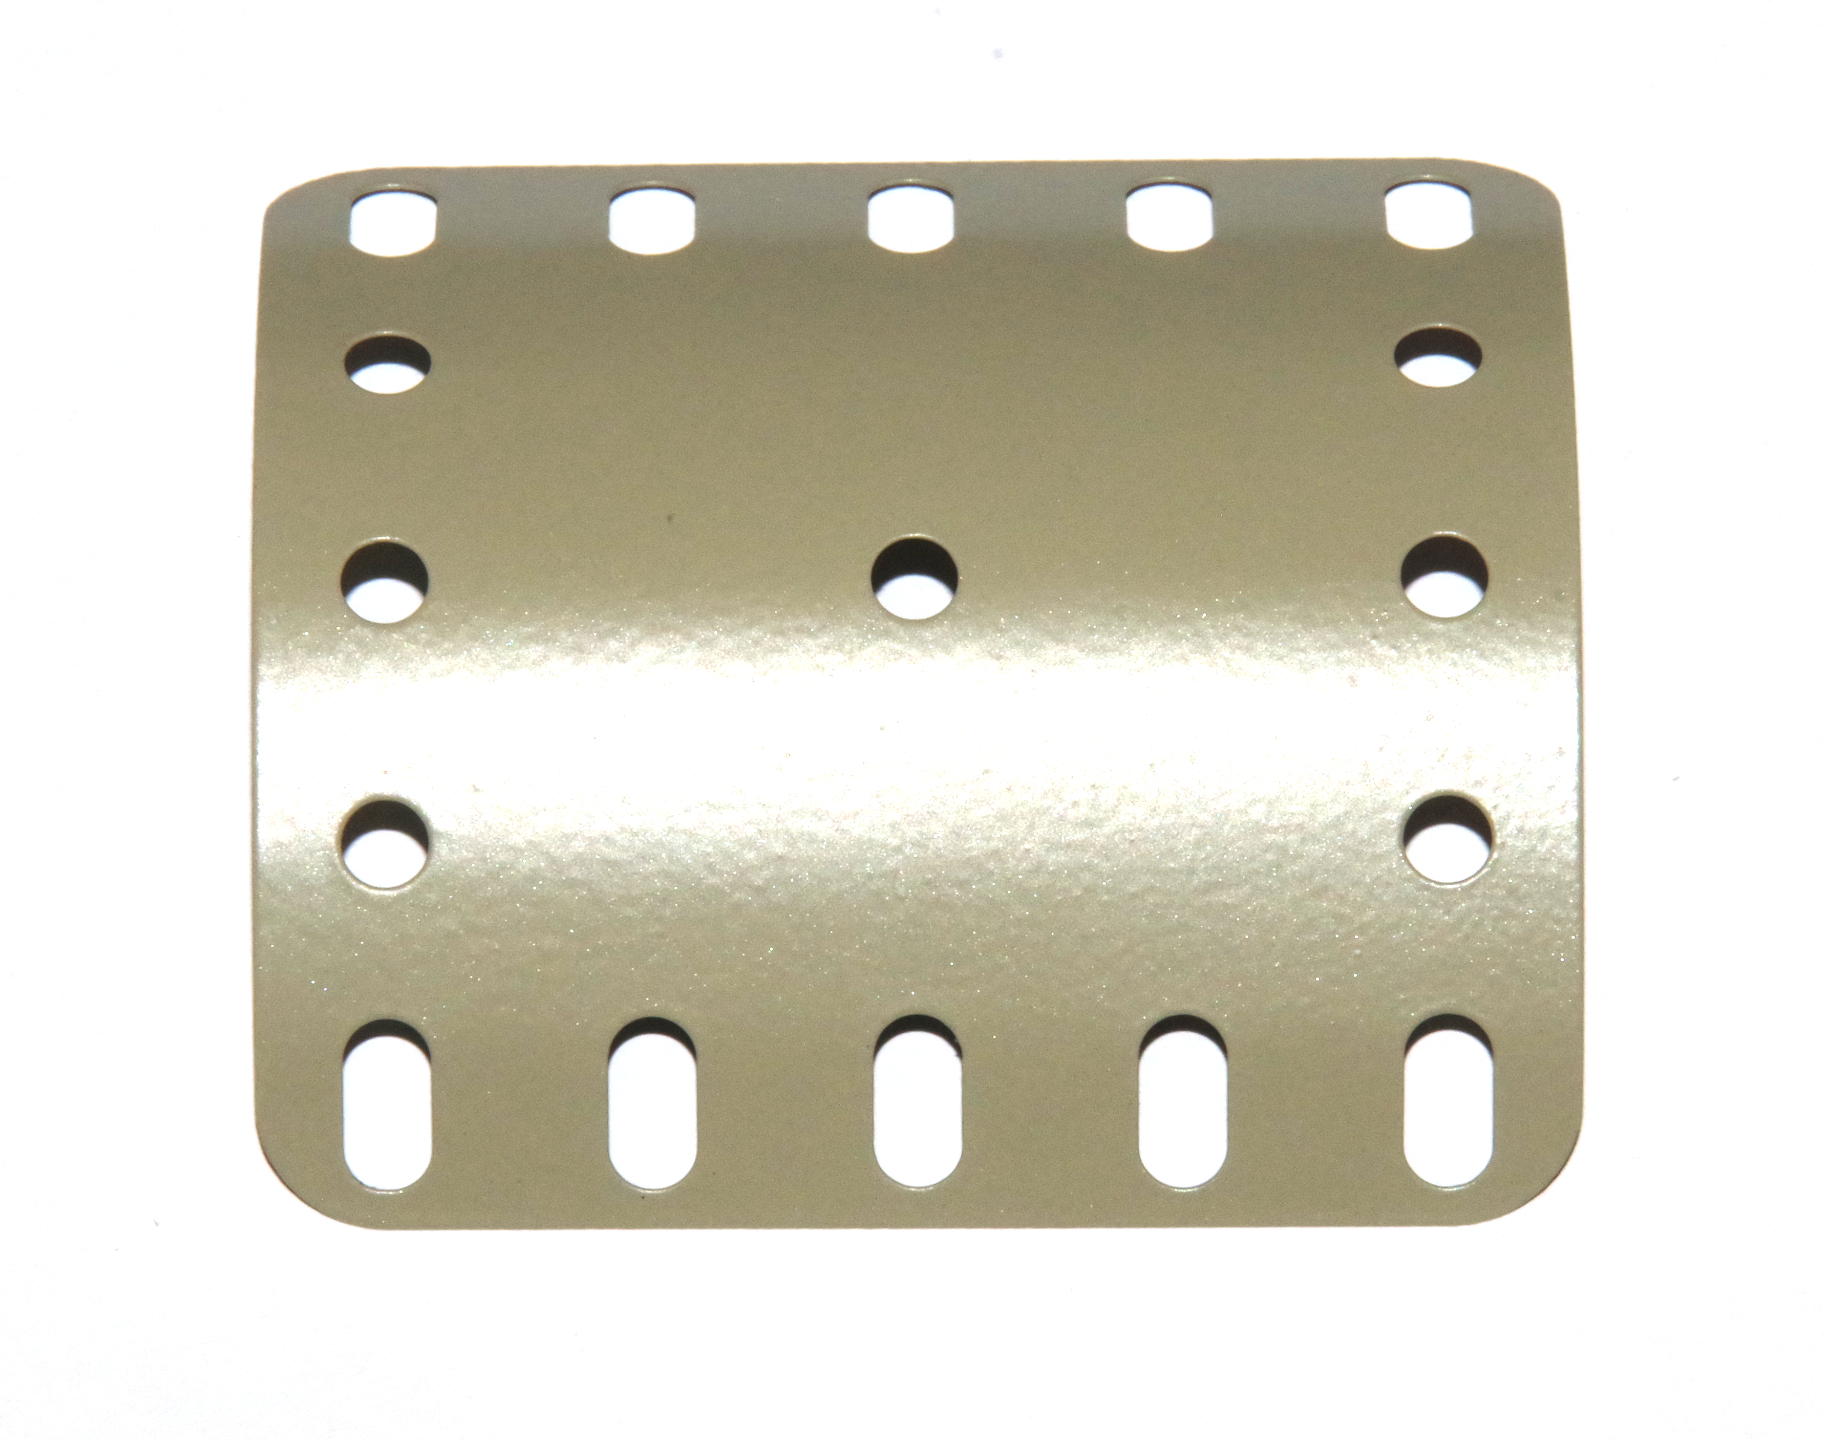 200 C Section Flexible Plate 5x5 Beige Original